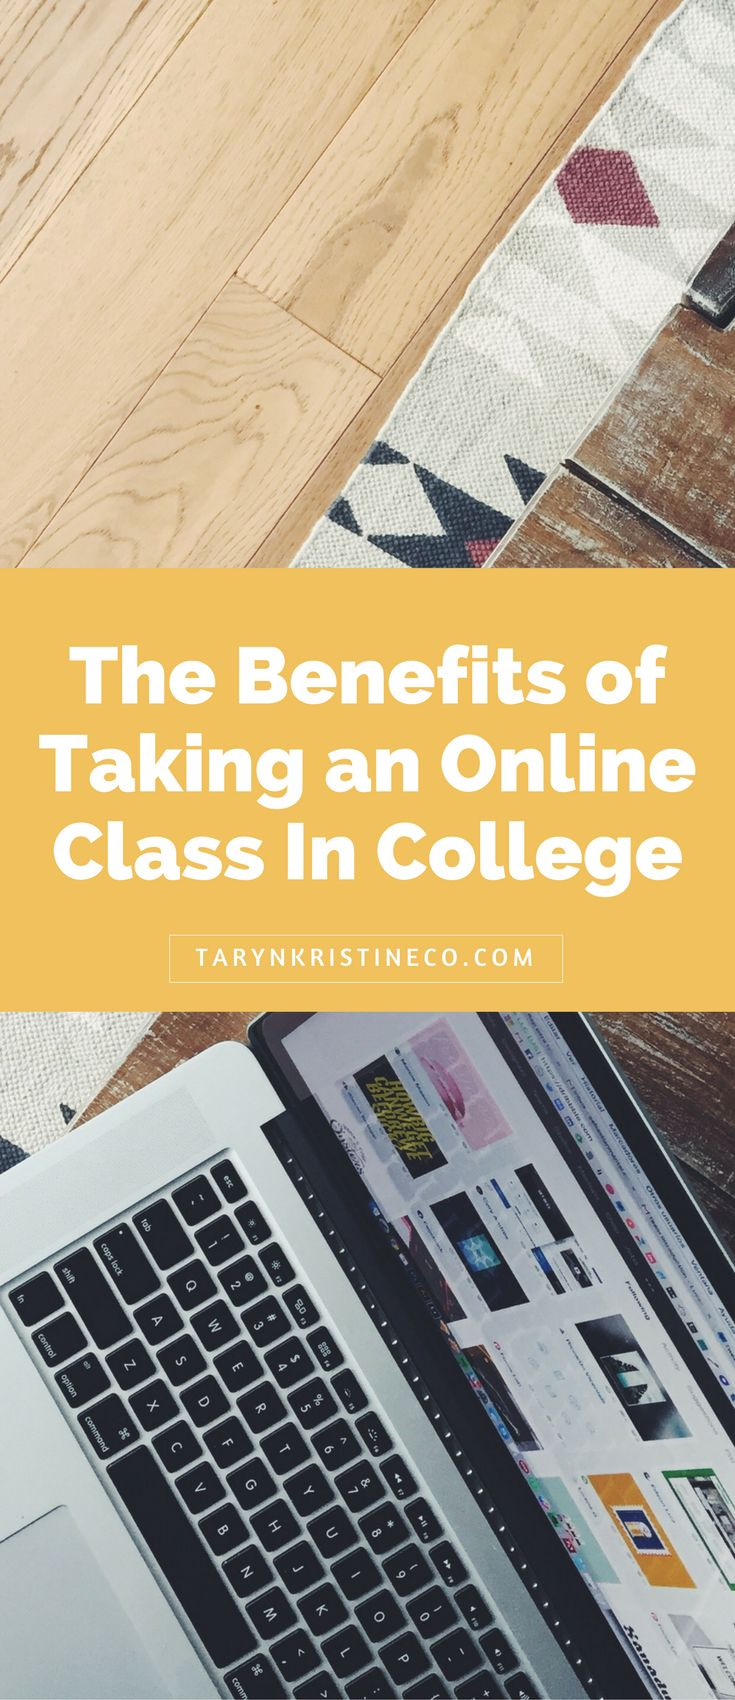 Four Amazing Benefits of Taking An Online Class in College & 431 best TK+CO images on Pinterest | Career advice Job career and ...